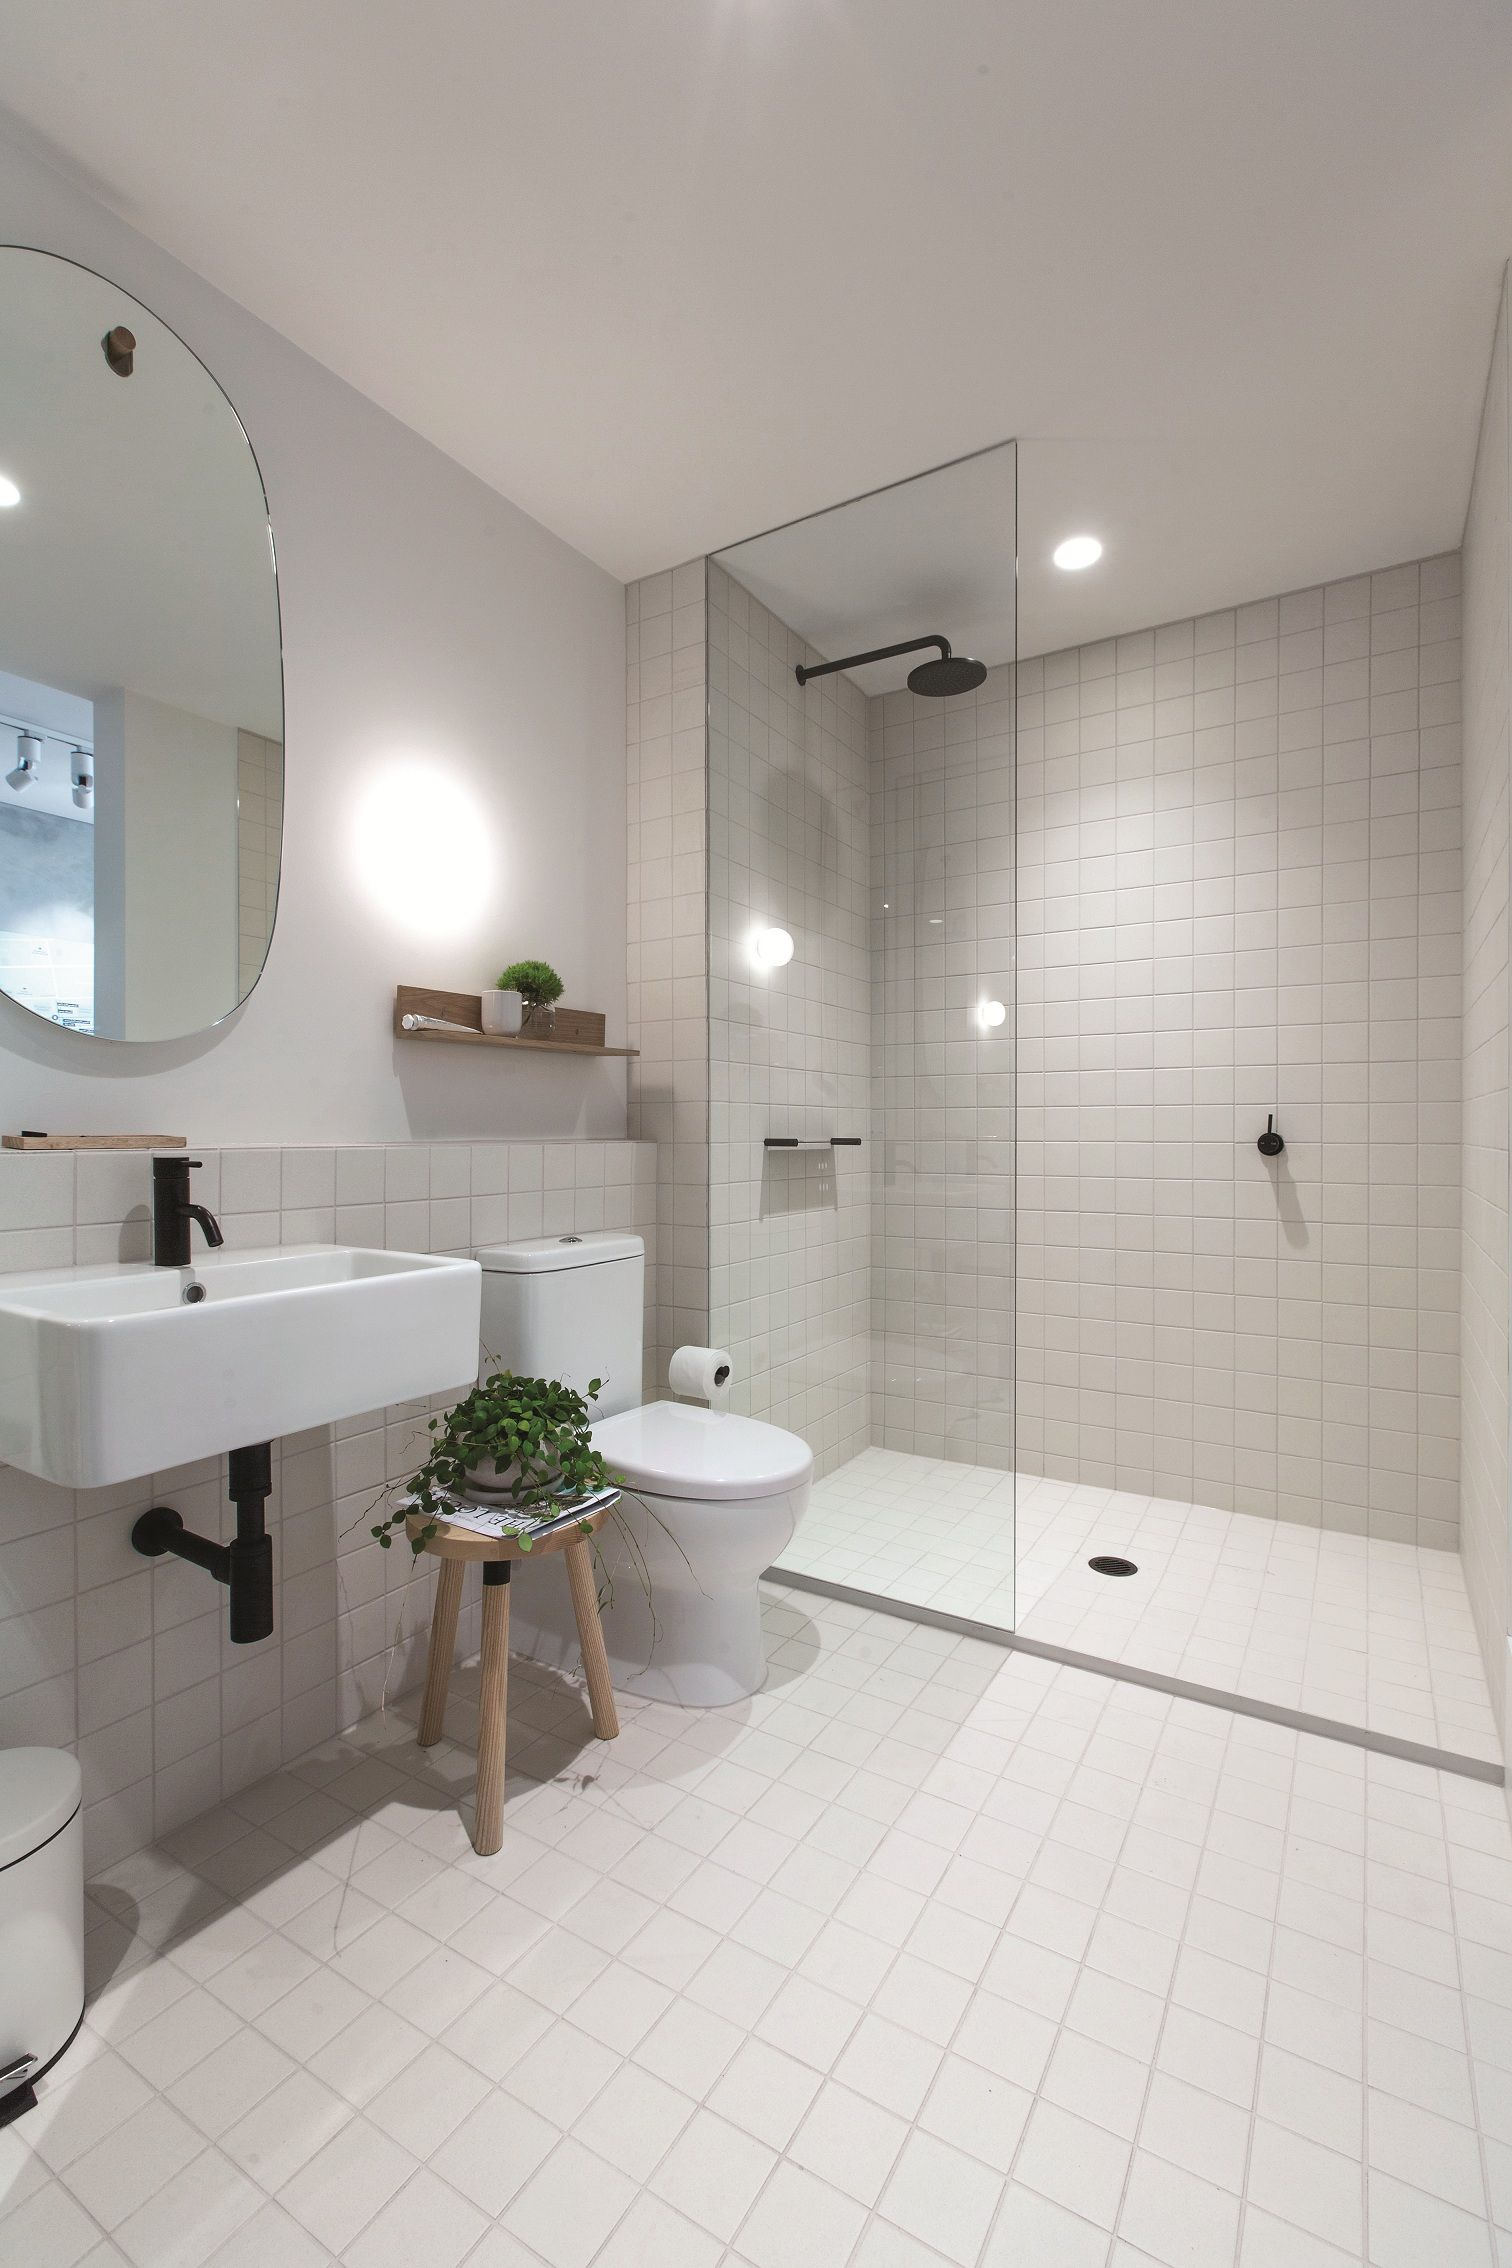 Bathroom Ideas Melbourne leo apartments | melbourne is design: hecker guthrie | if i could